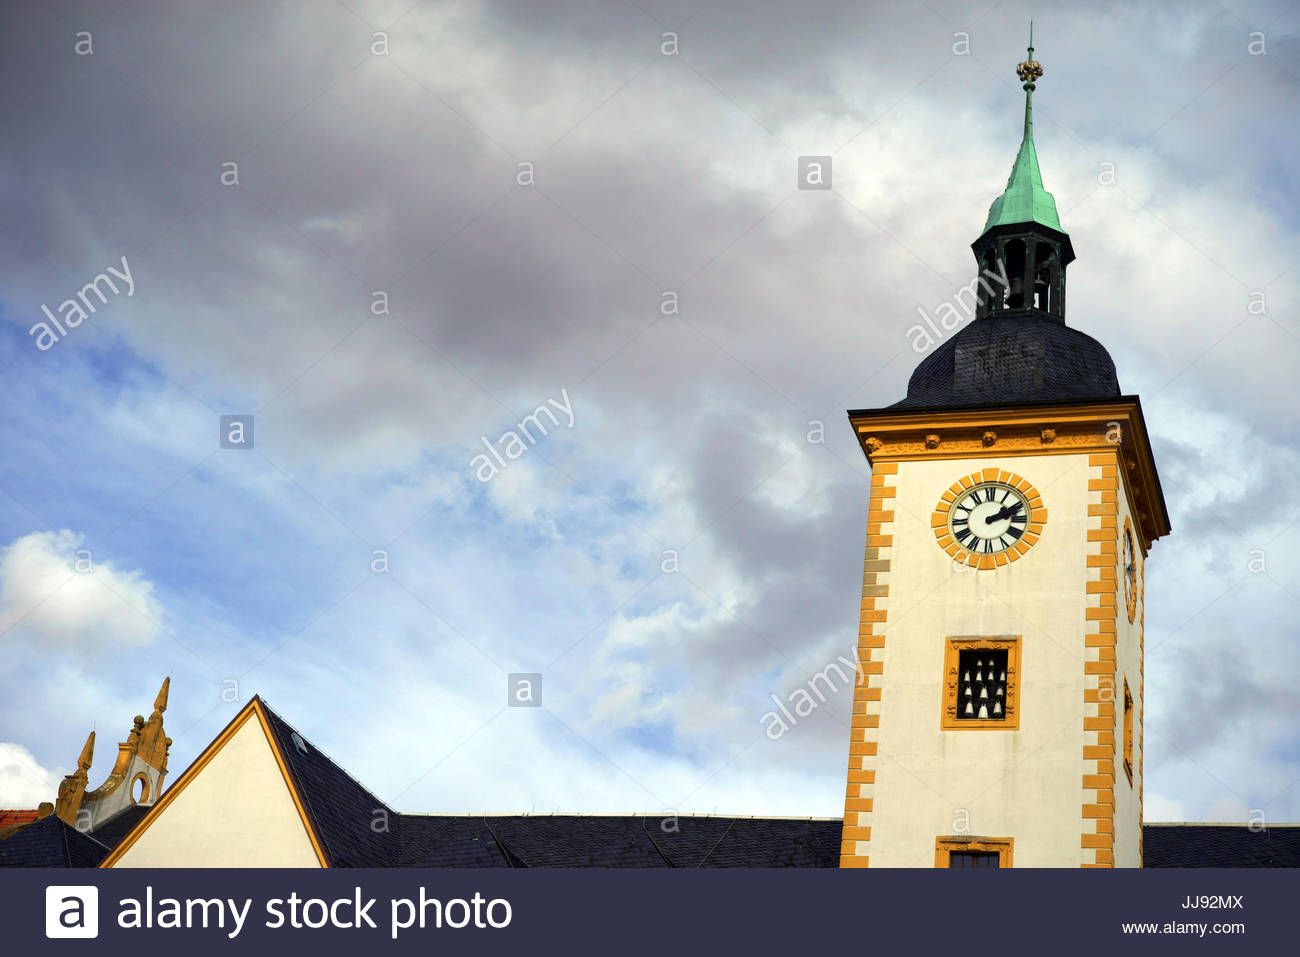 The clock tower on City Hall building in Freiberg, Germany. - Stock Image